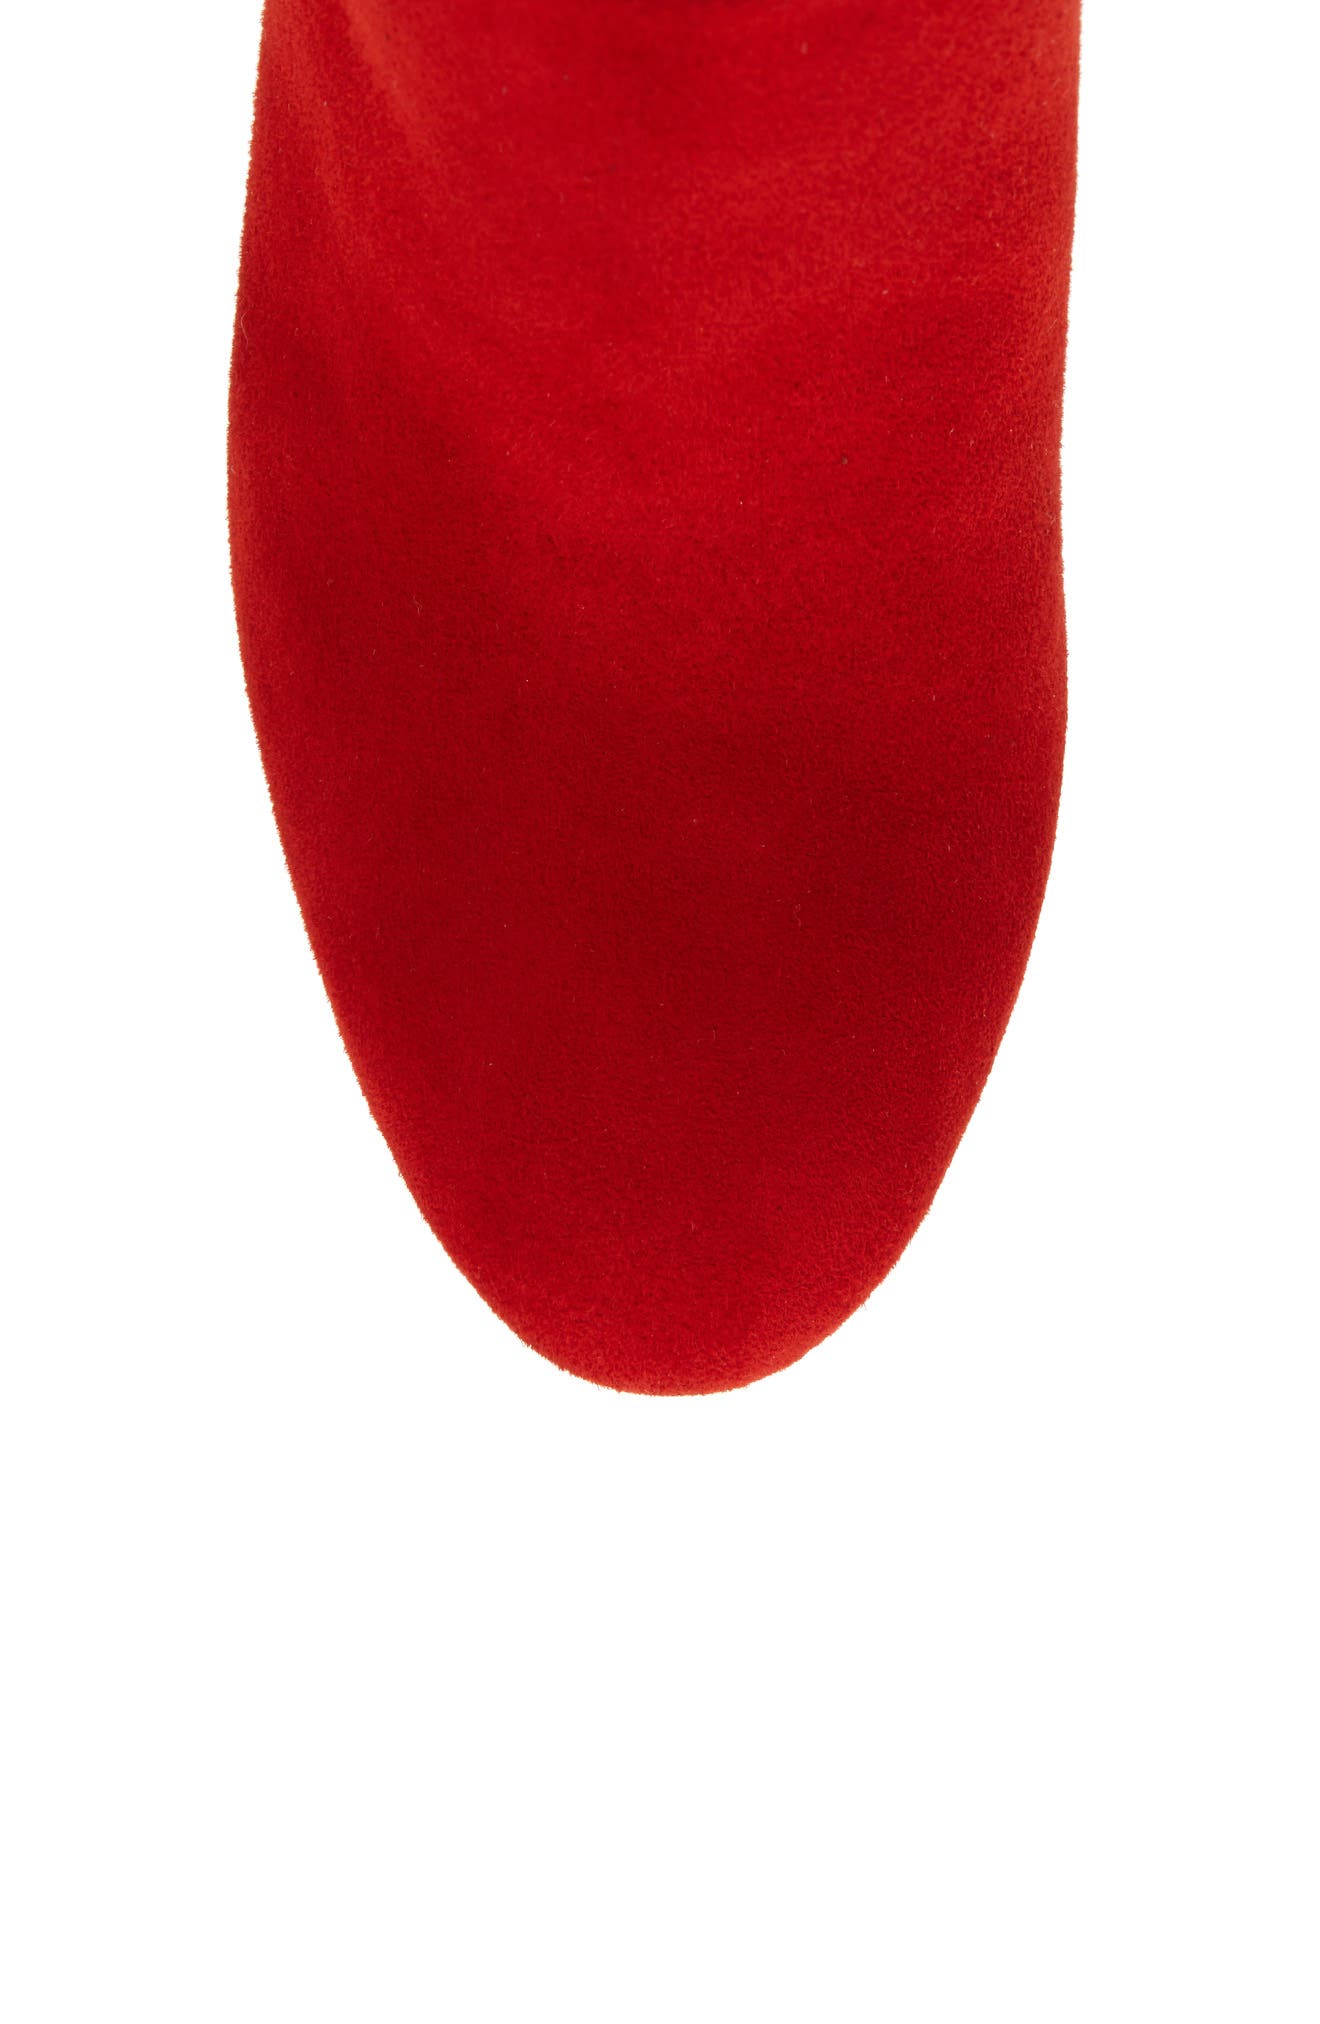 Caprice Knee-High Boot,                             Alternate thumbnail 5, color,                             CANDY RED SUEDE